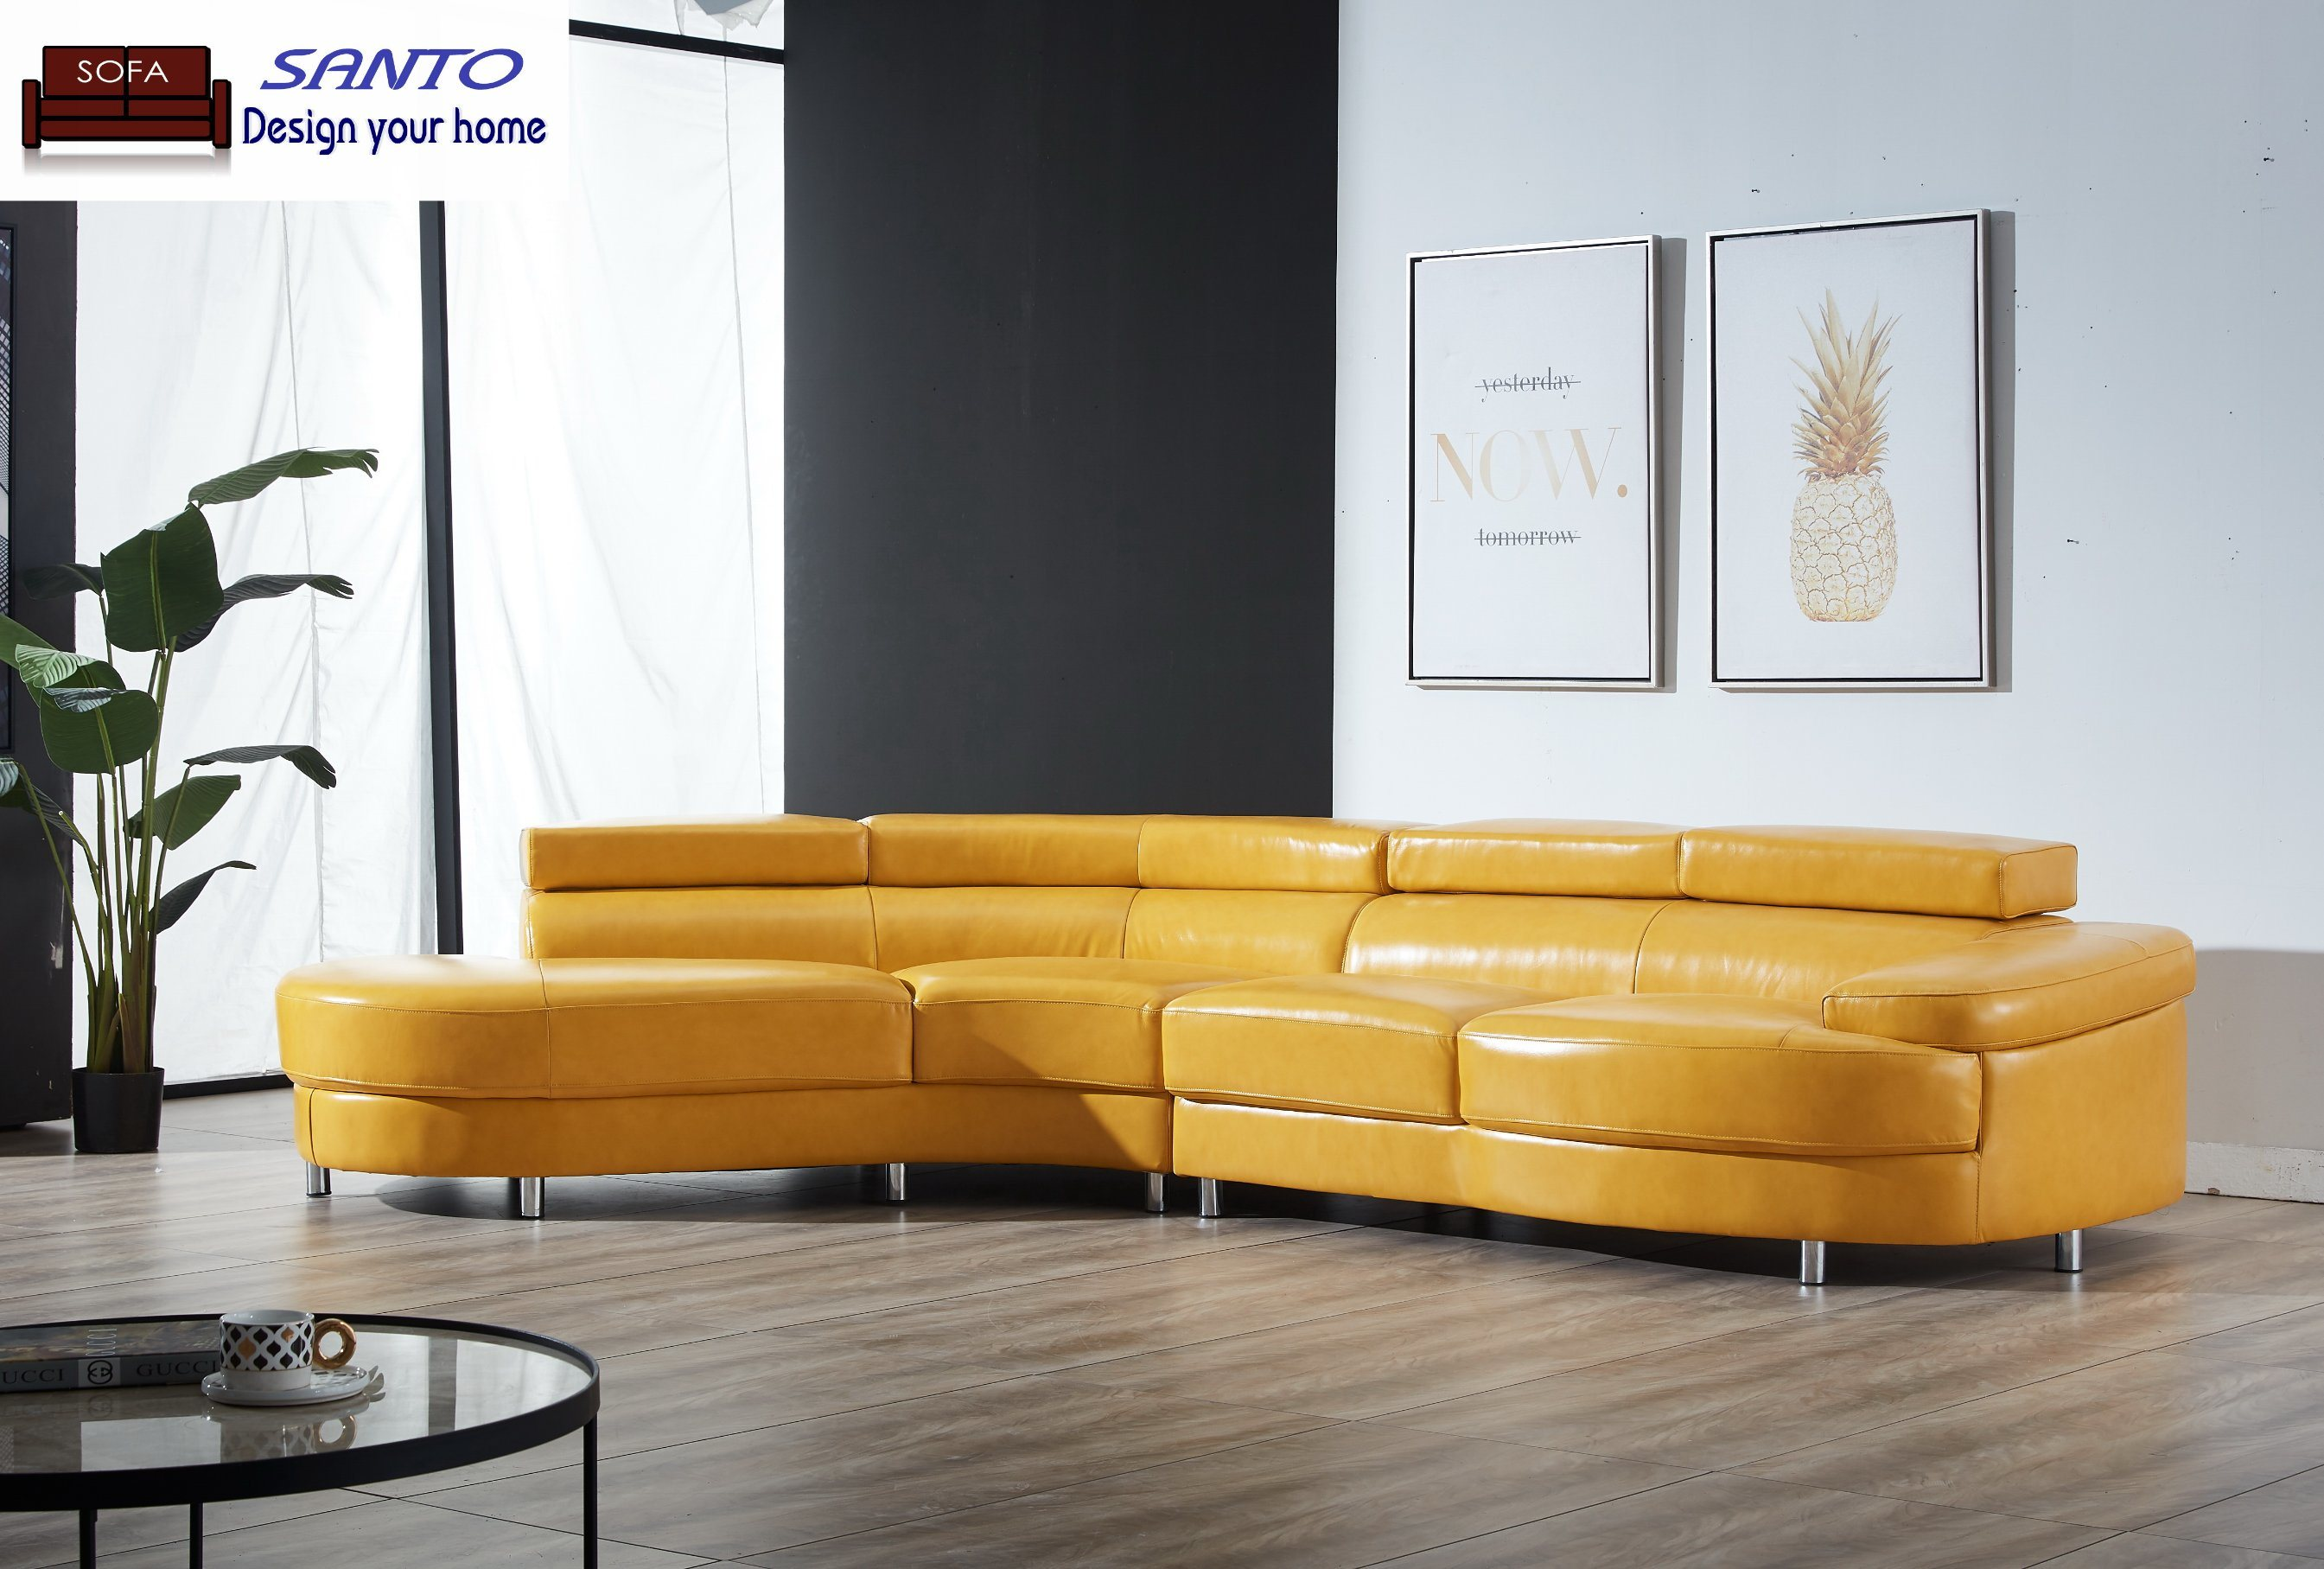 [Hot Item] Contemporary Italian Leather Sectional Sofa Italian Style Sofas  Design Leather Furniture Complete Home Furniture Famous Italian Furniture